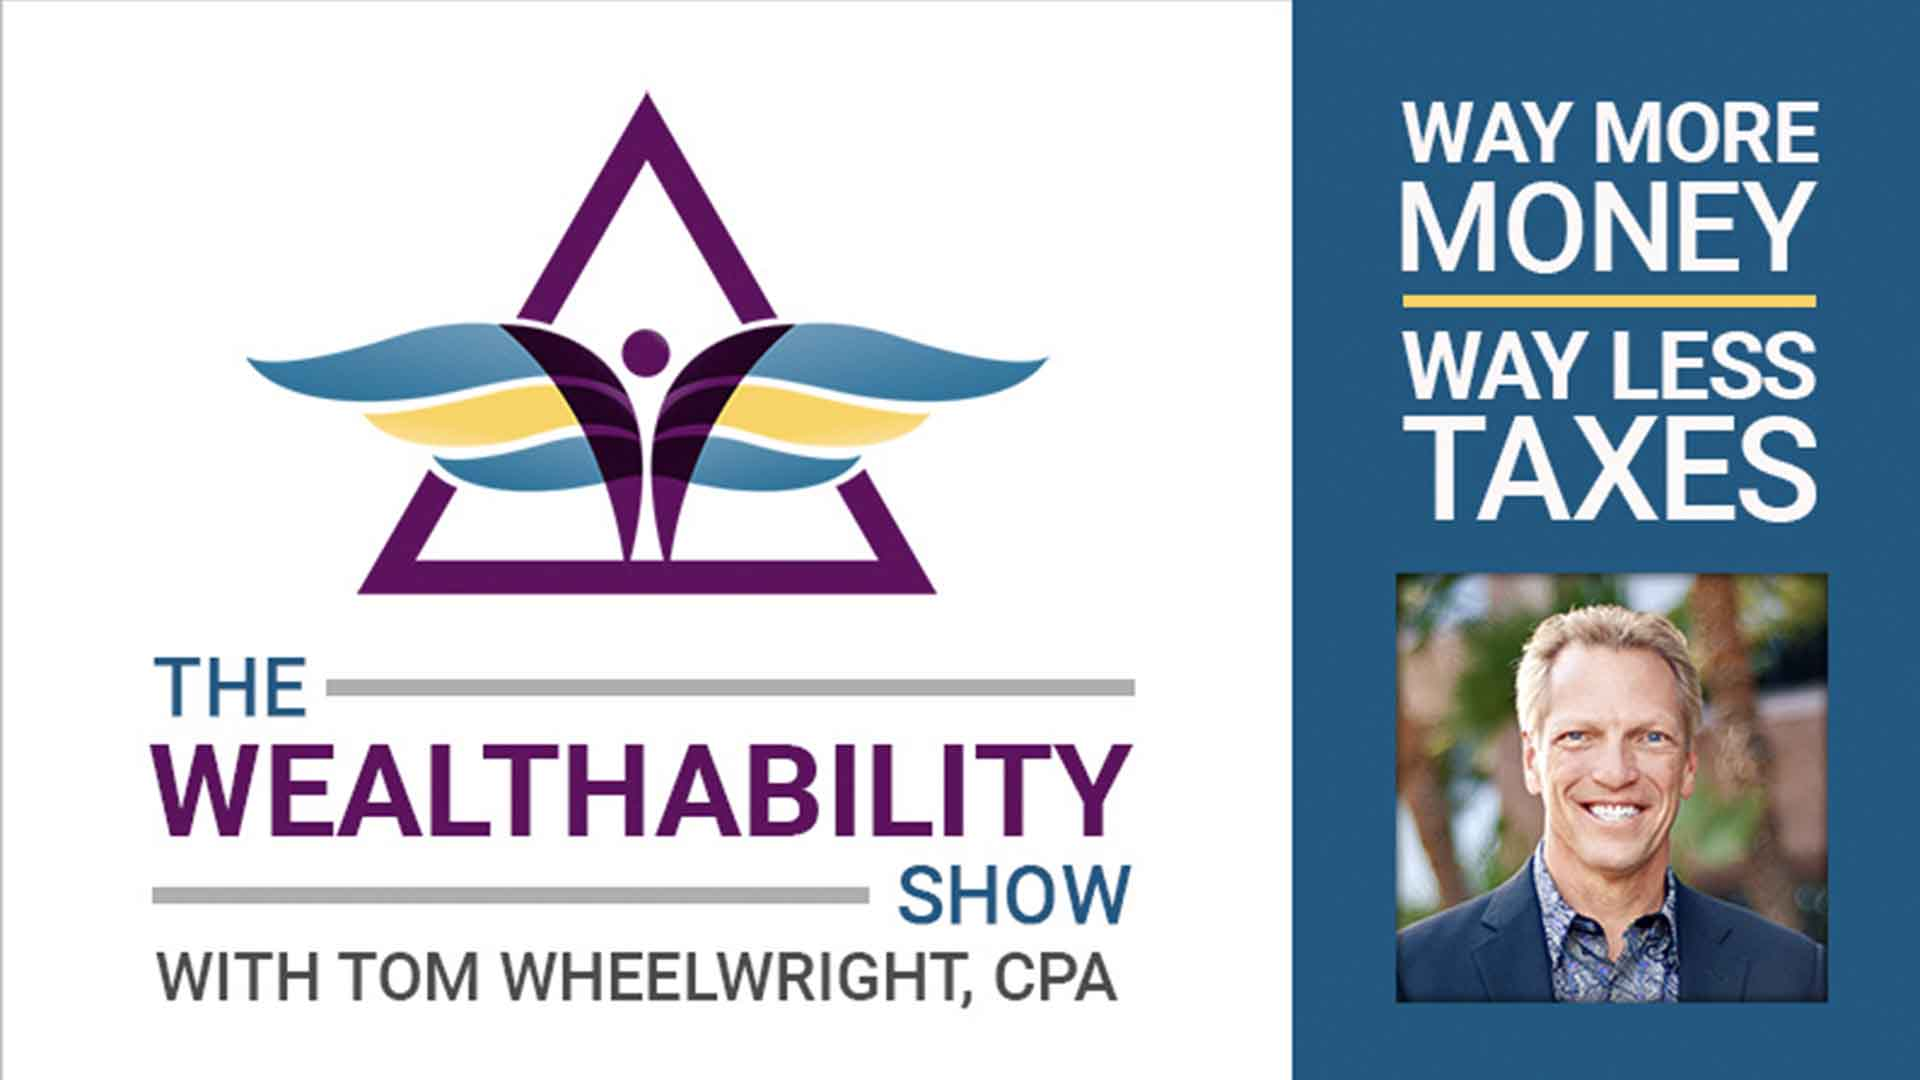 WealthAbility Show Image